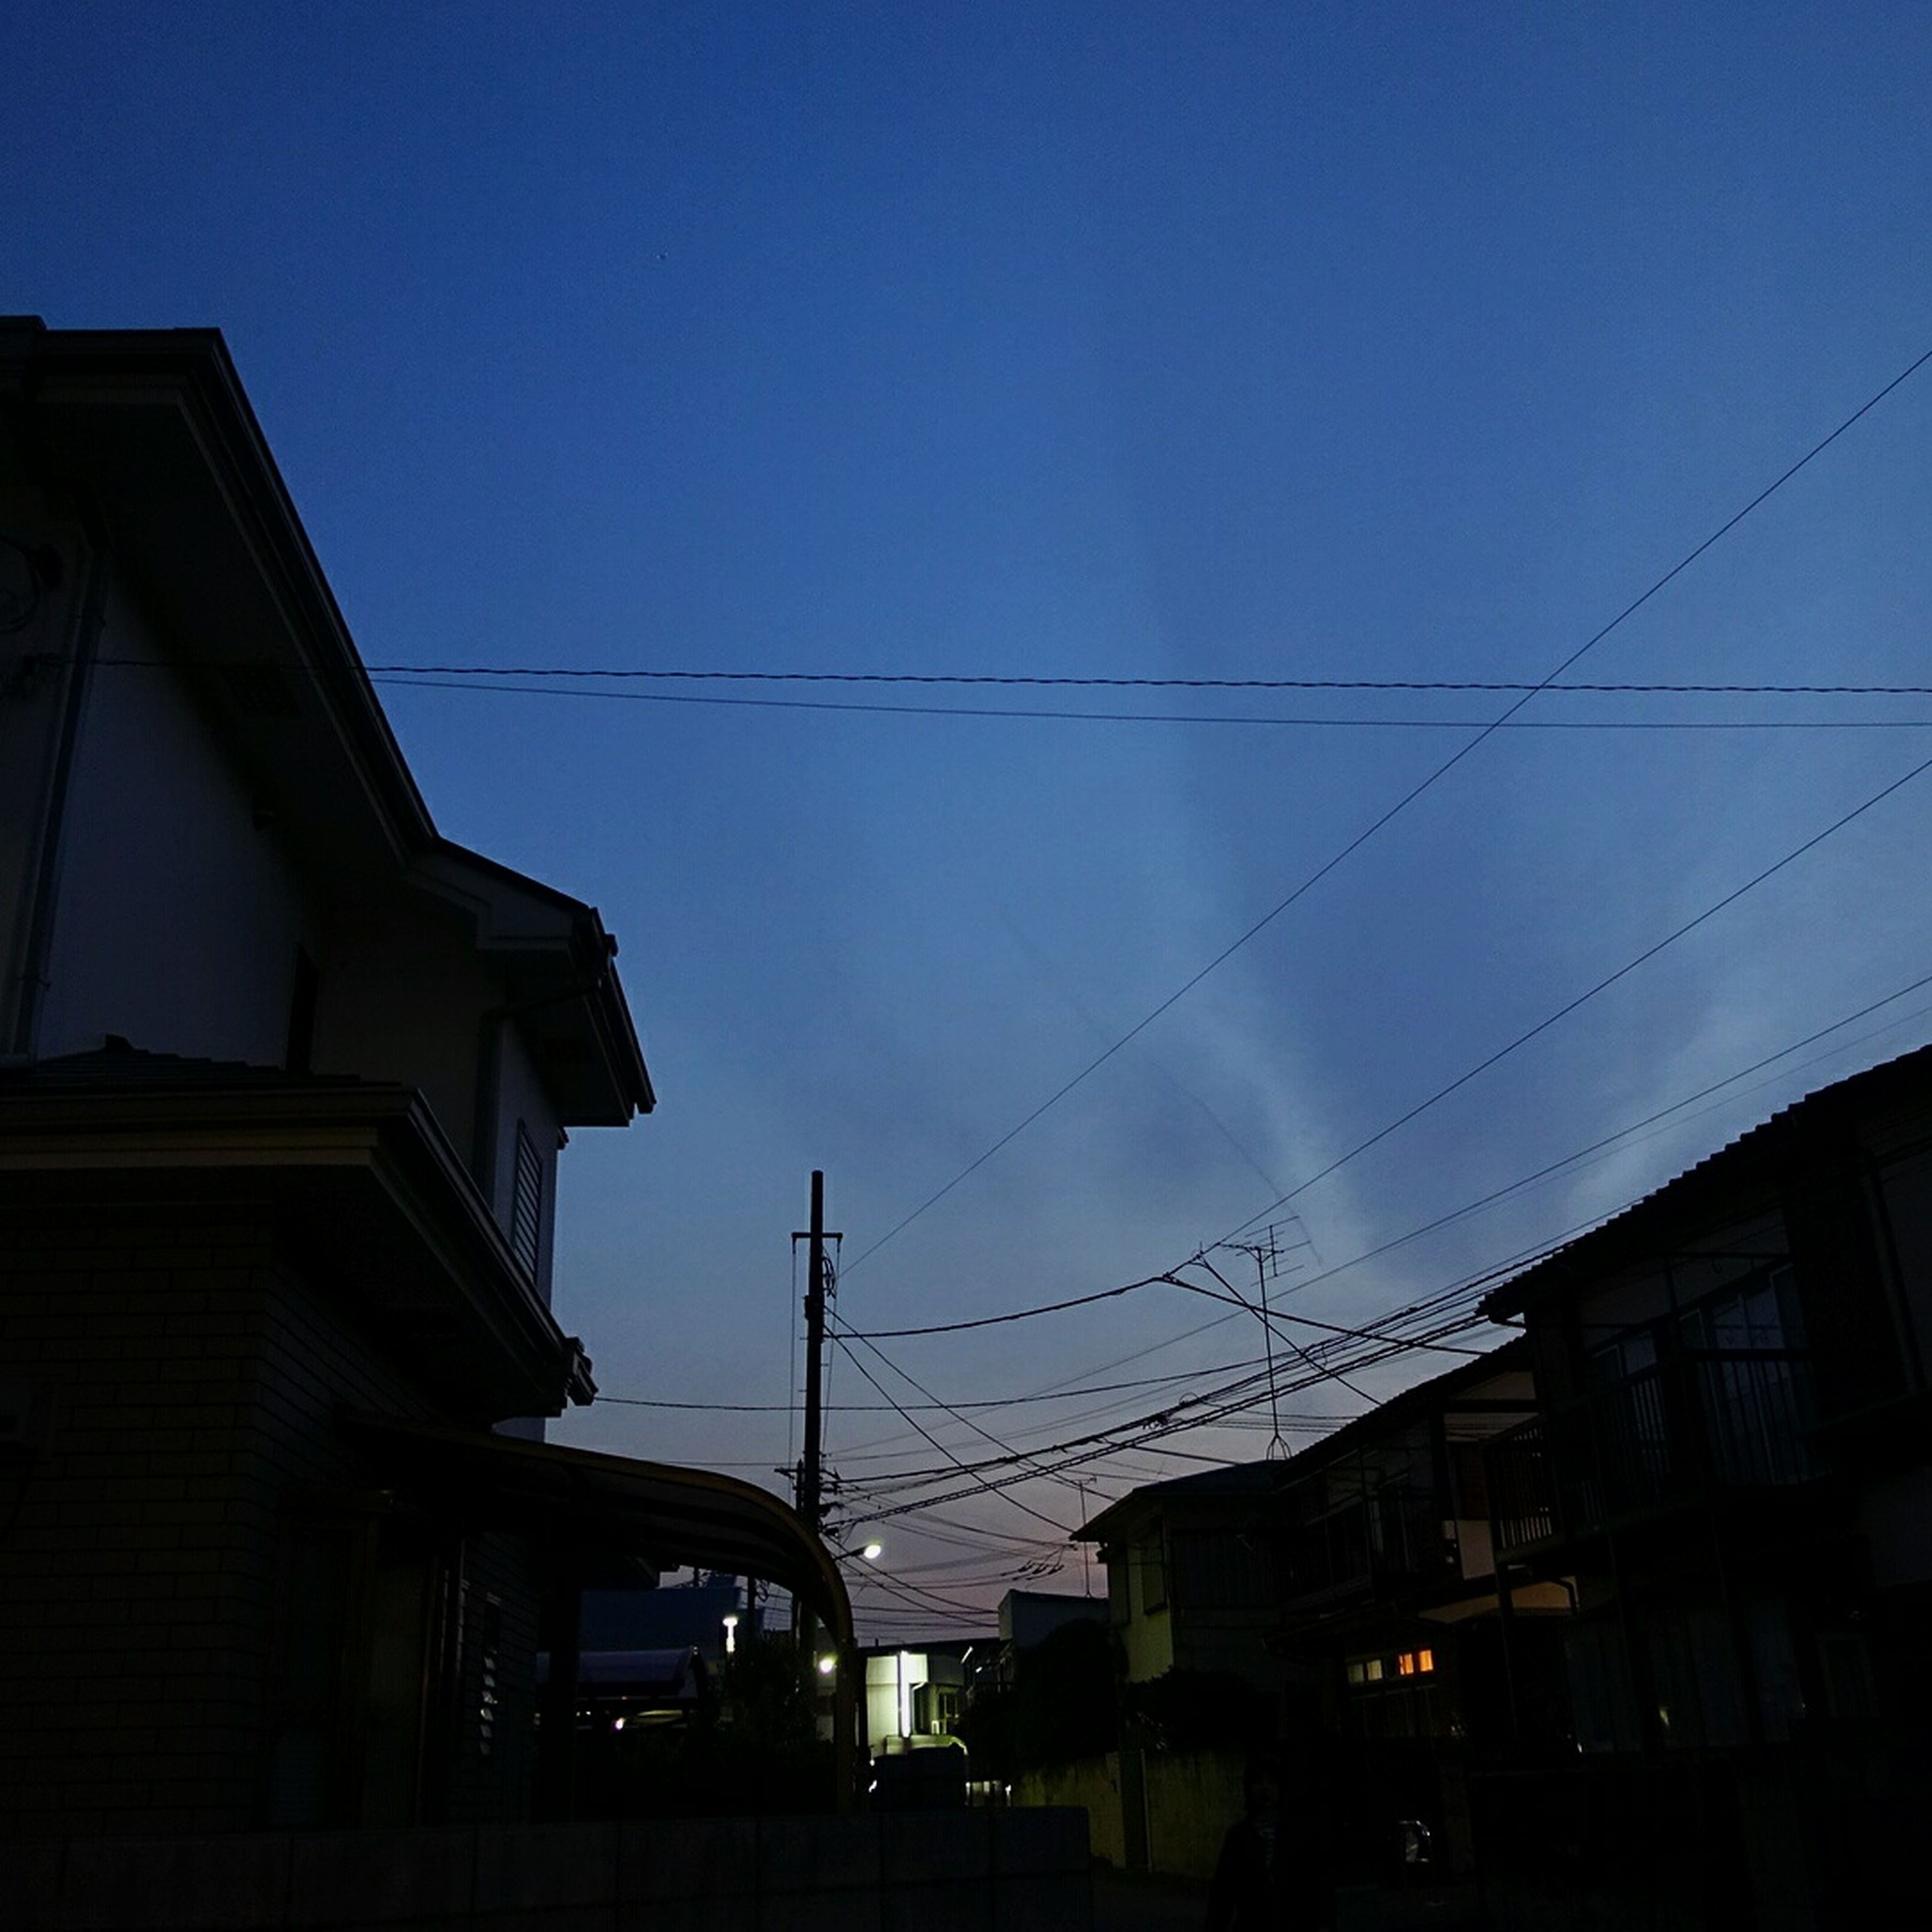 building exterior, architecture, built structure, power line, low angle view, transportation, cable, electricity pylon, city, sky, car, street, electricity, street light, clear sky, building, residential structure, residential building, dusk, silhouette